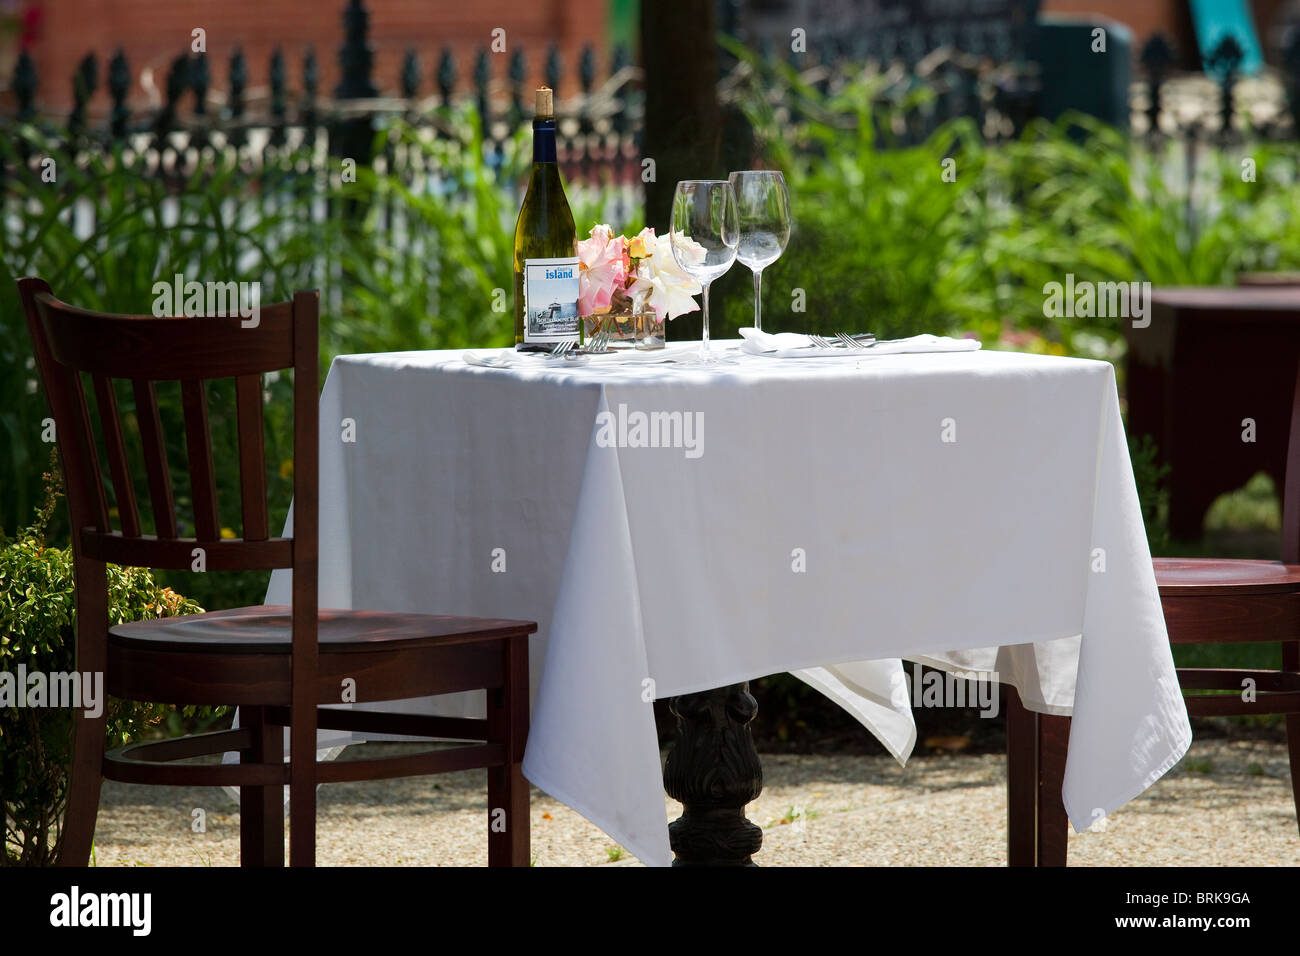 Wine Glasses And Wine Bottle On Table With White Table Cloth